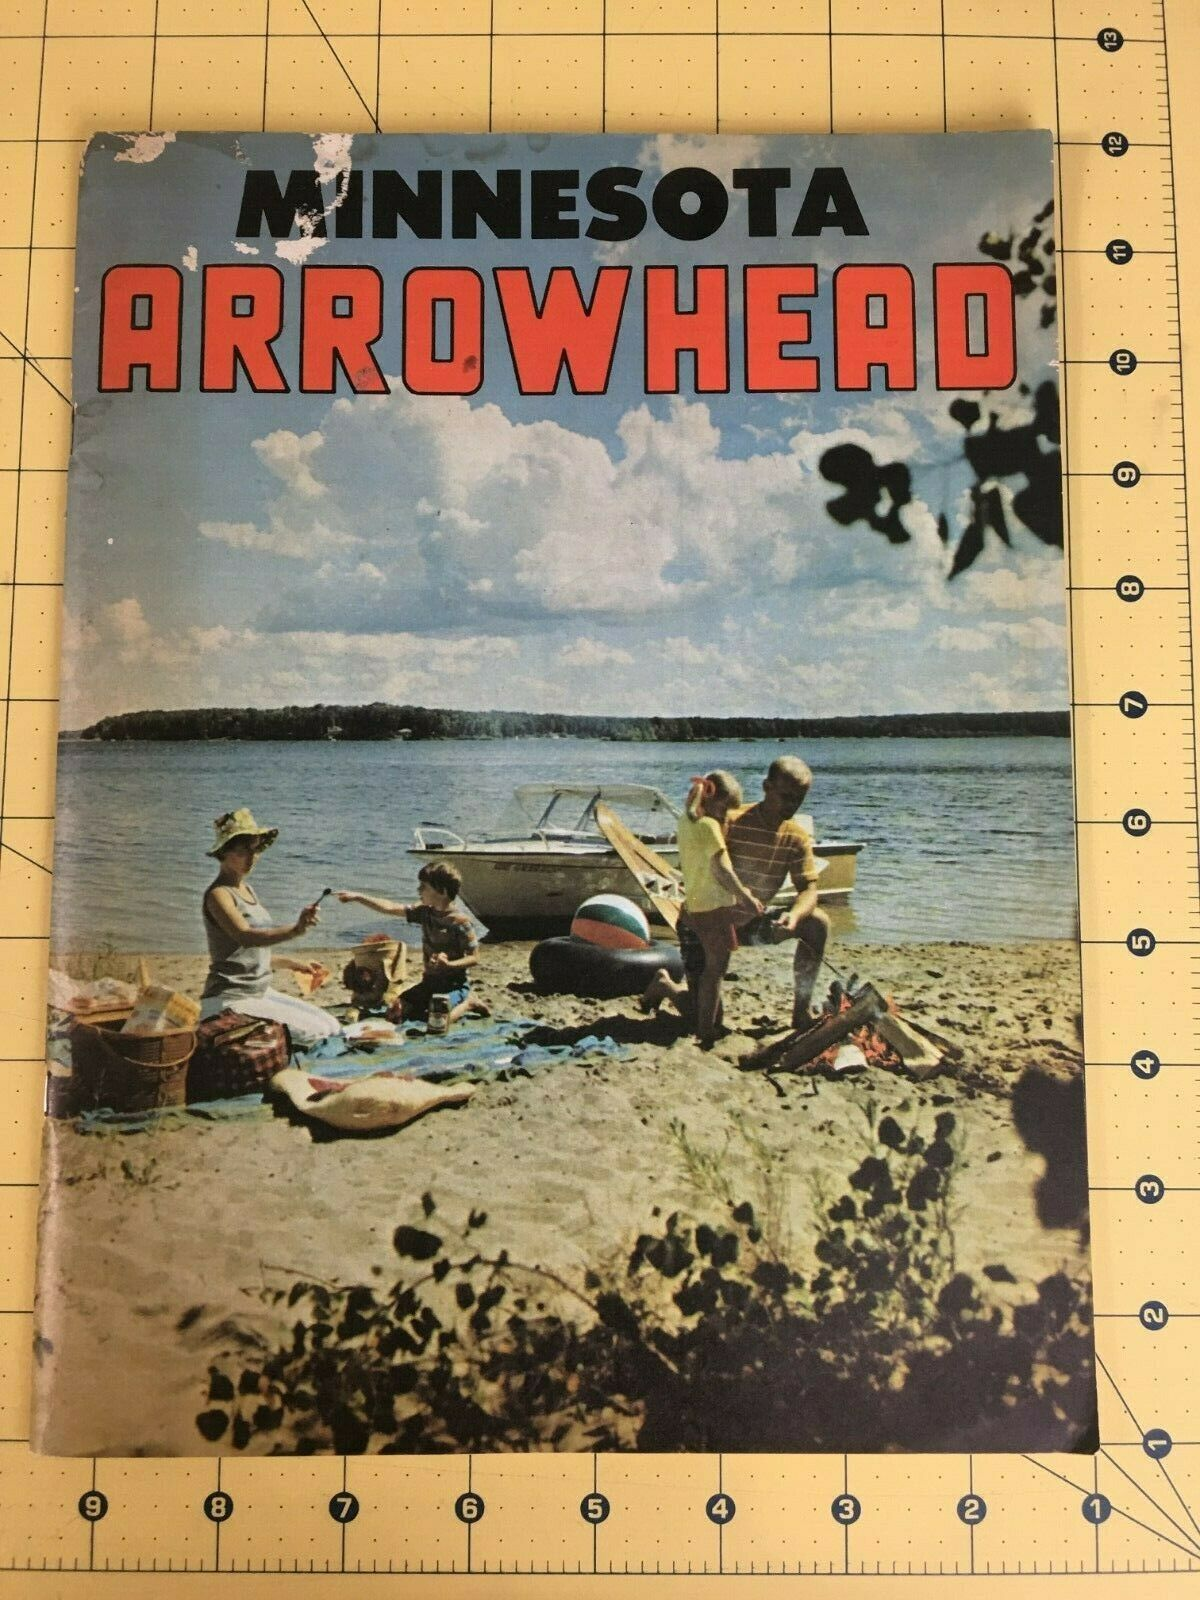 Vintage Minnesota Arrowhead Travel Vacation And 50 Similar Items